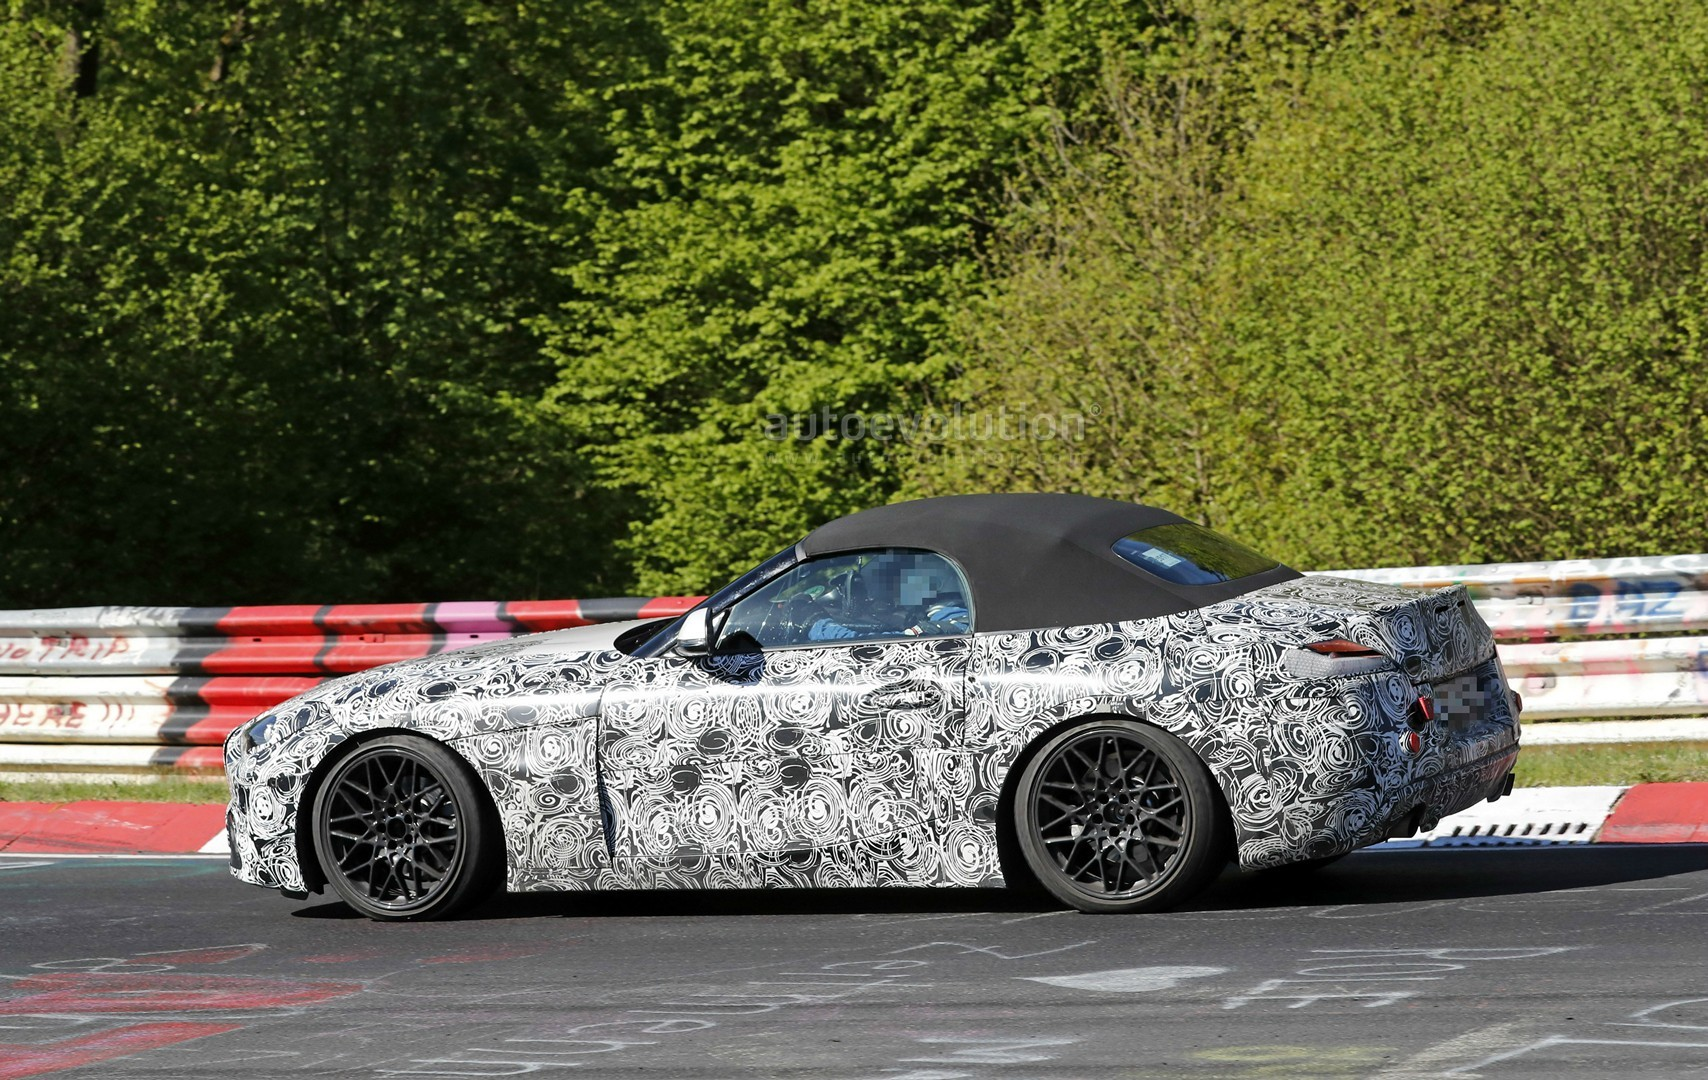 2018 bmw z4 s20i interior spyshots reveal specs and 6 speed manual gearbox autoevolution. Black Bedroom Furniture Sets. Home Design Ideas